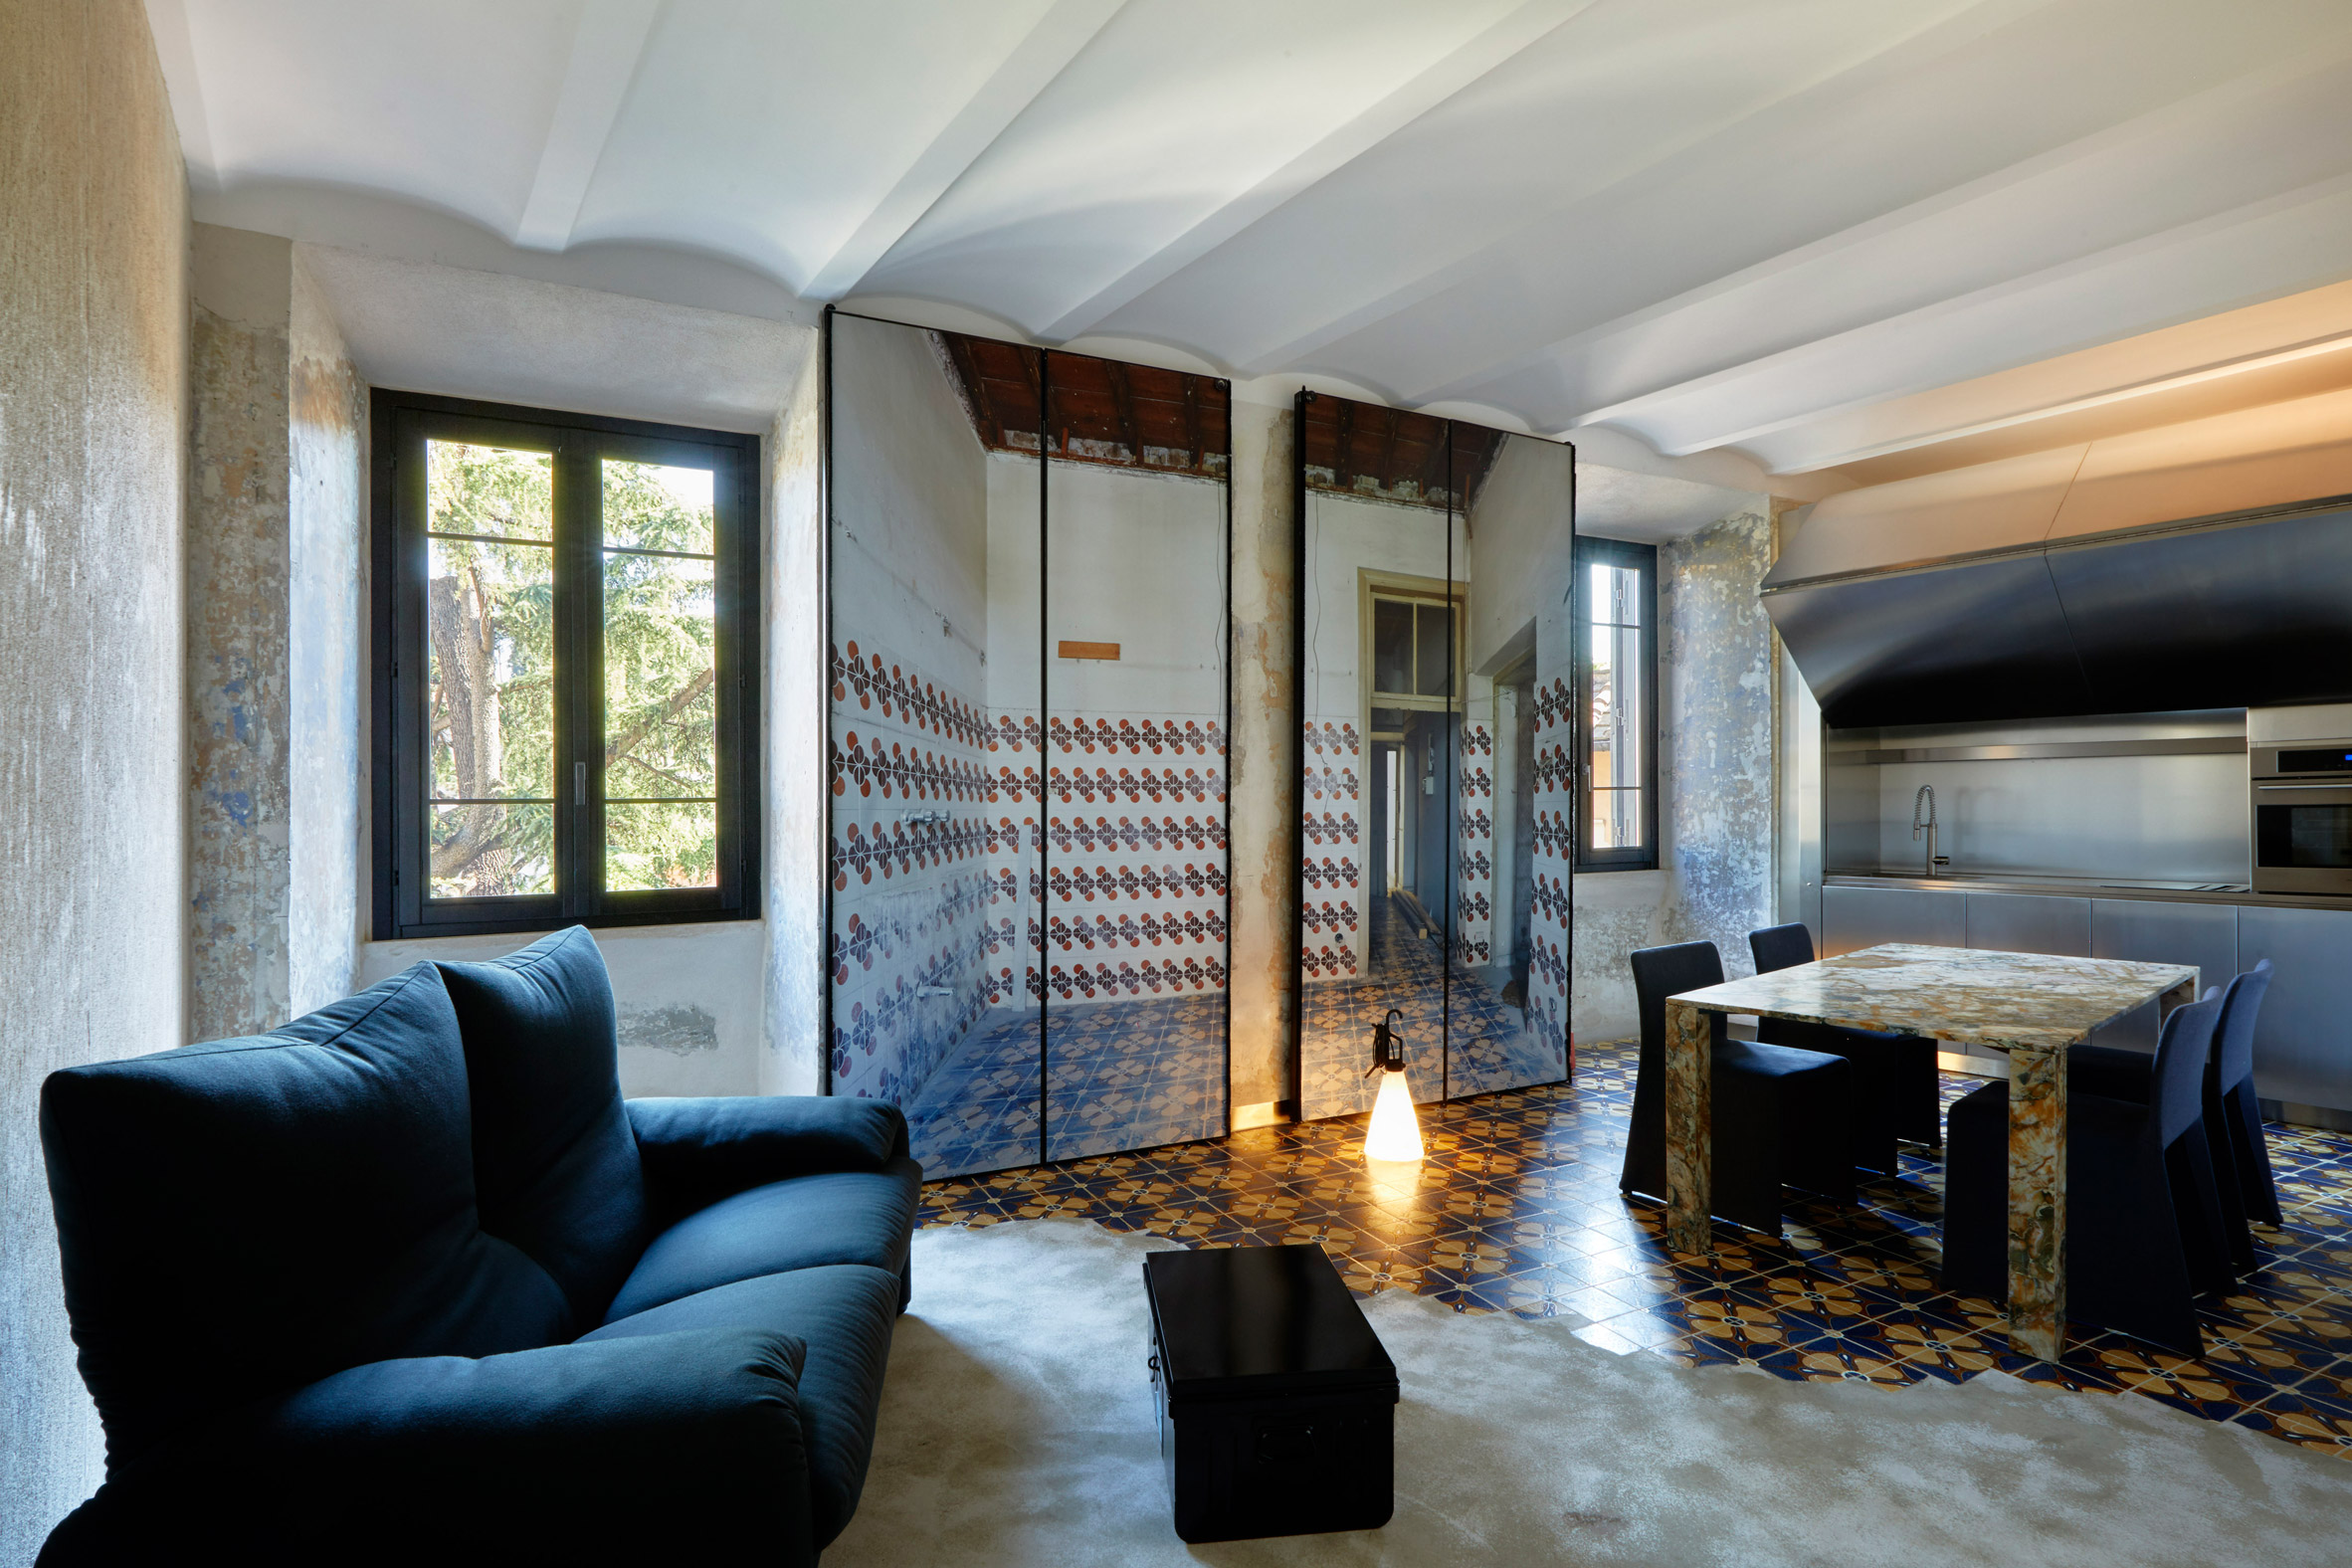 Rooms of Rome guest suites designed by Jean Nouvel